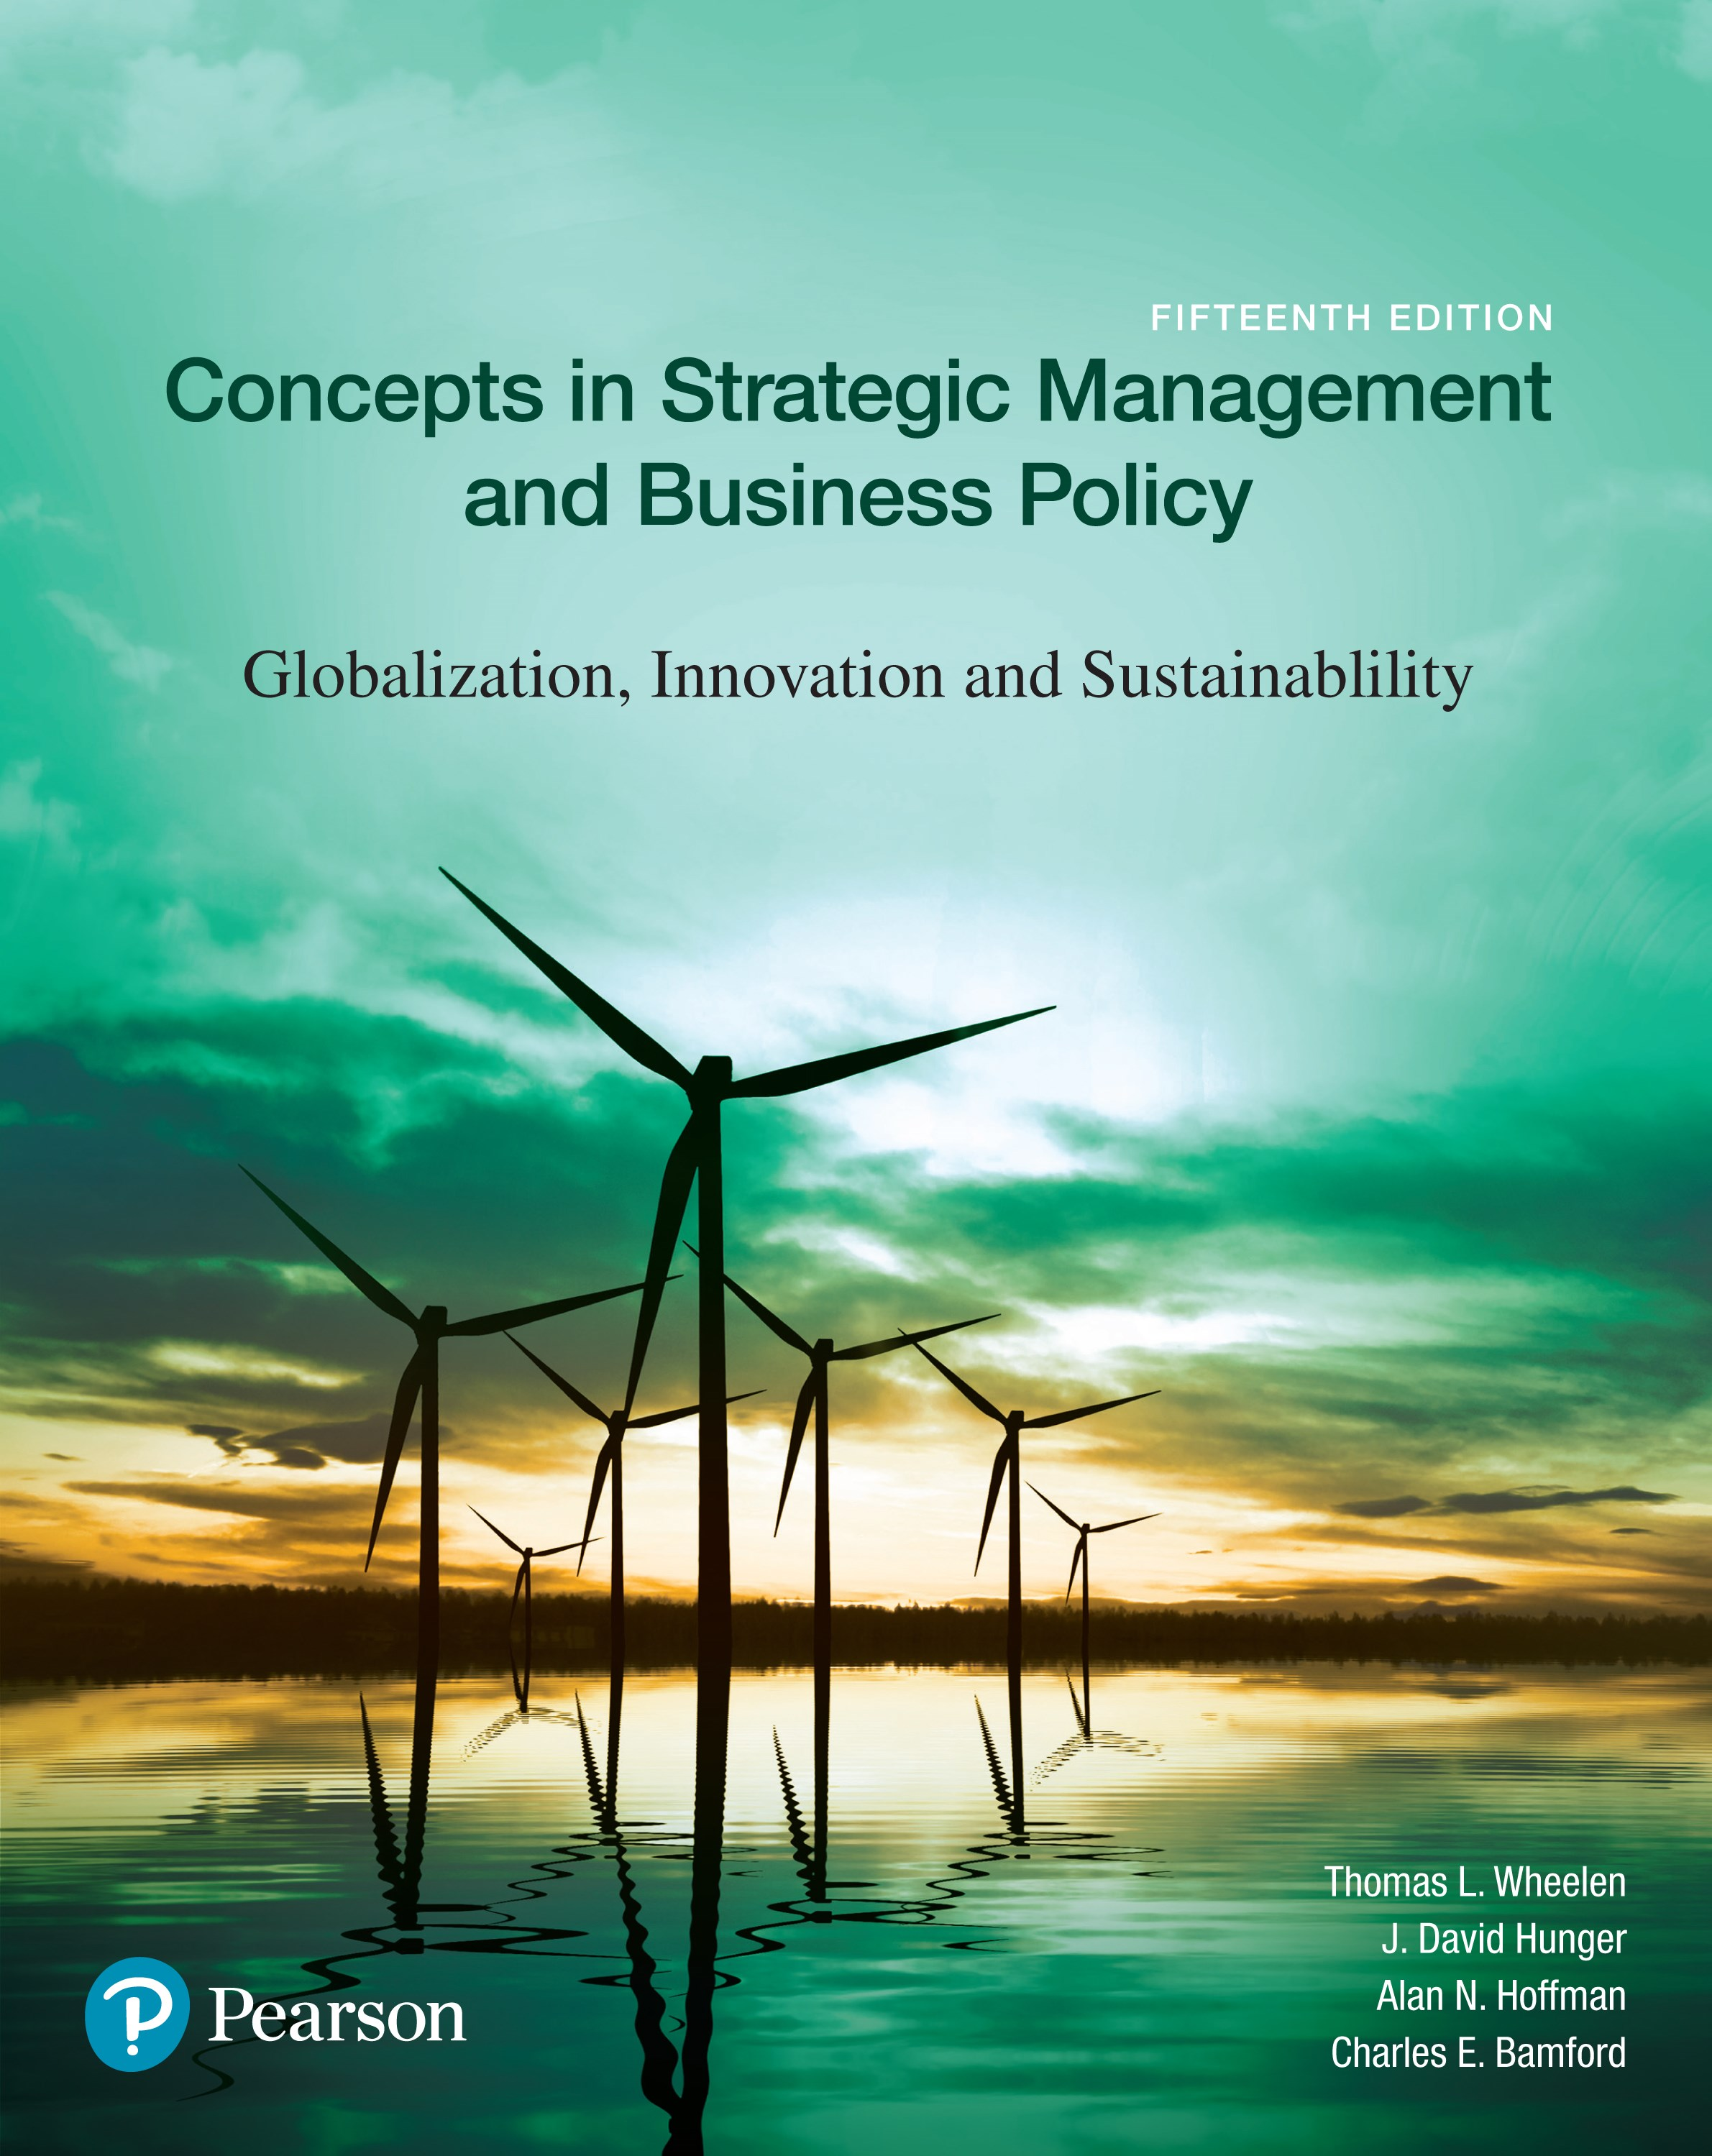 Concepts in Strategic Management and Business Policy: Globalization, Innovation and Sustainability [RENTAL EDITION], 15th Edition